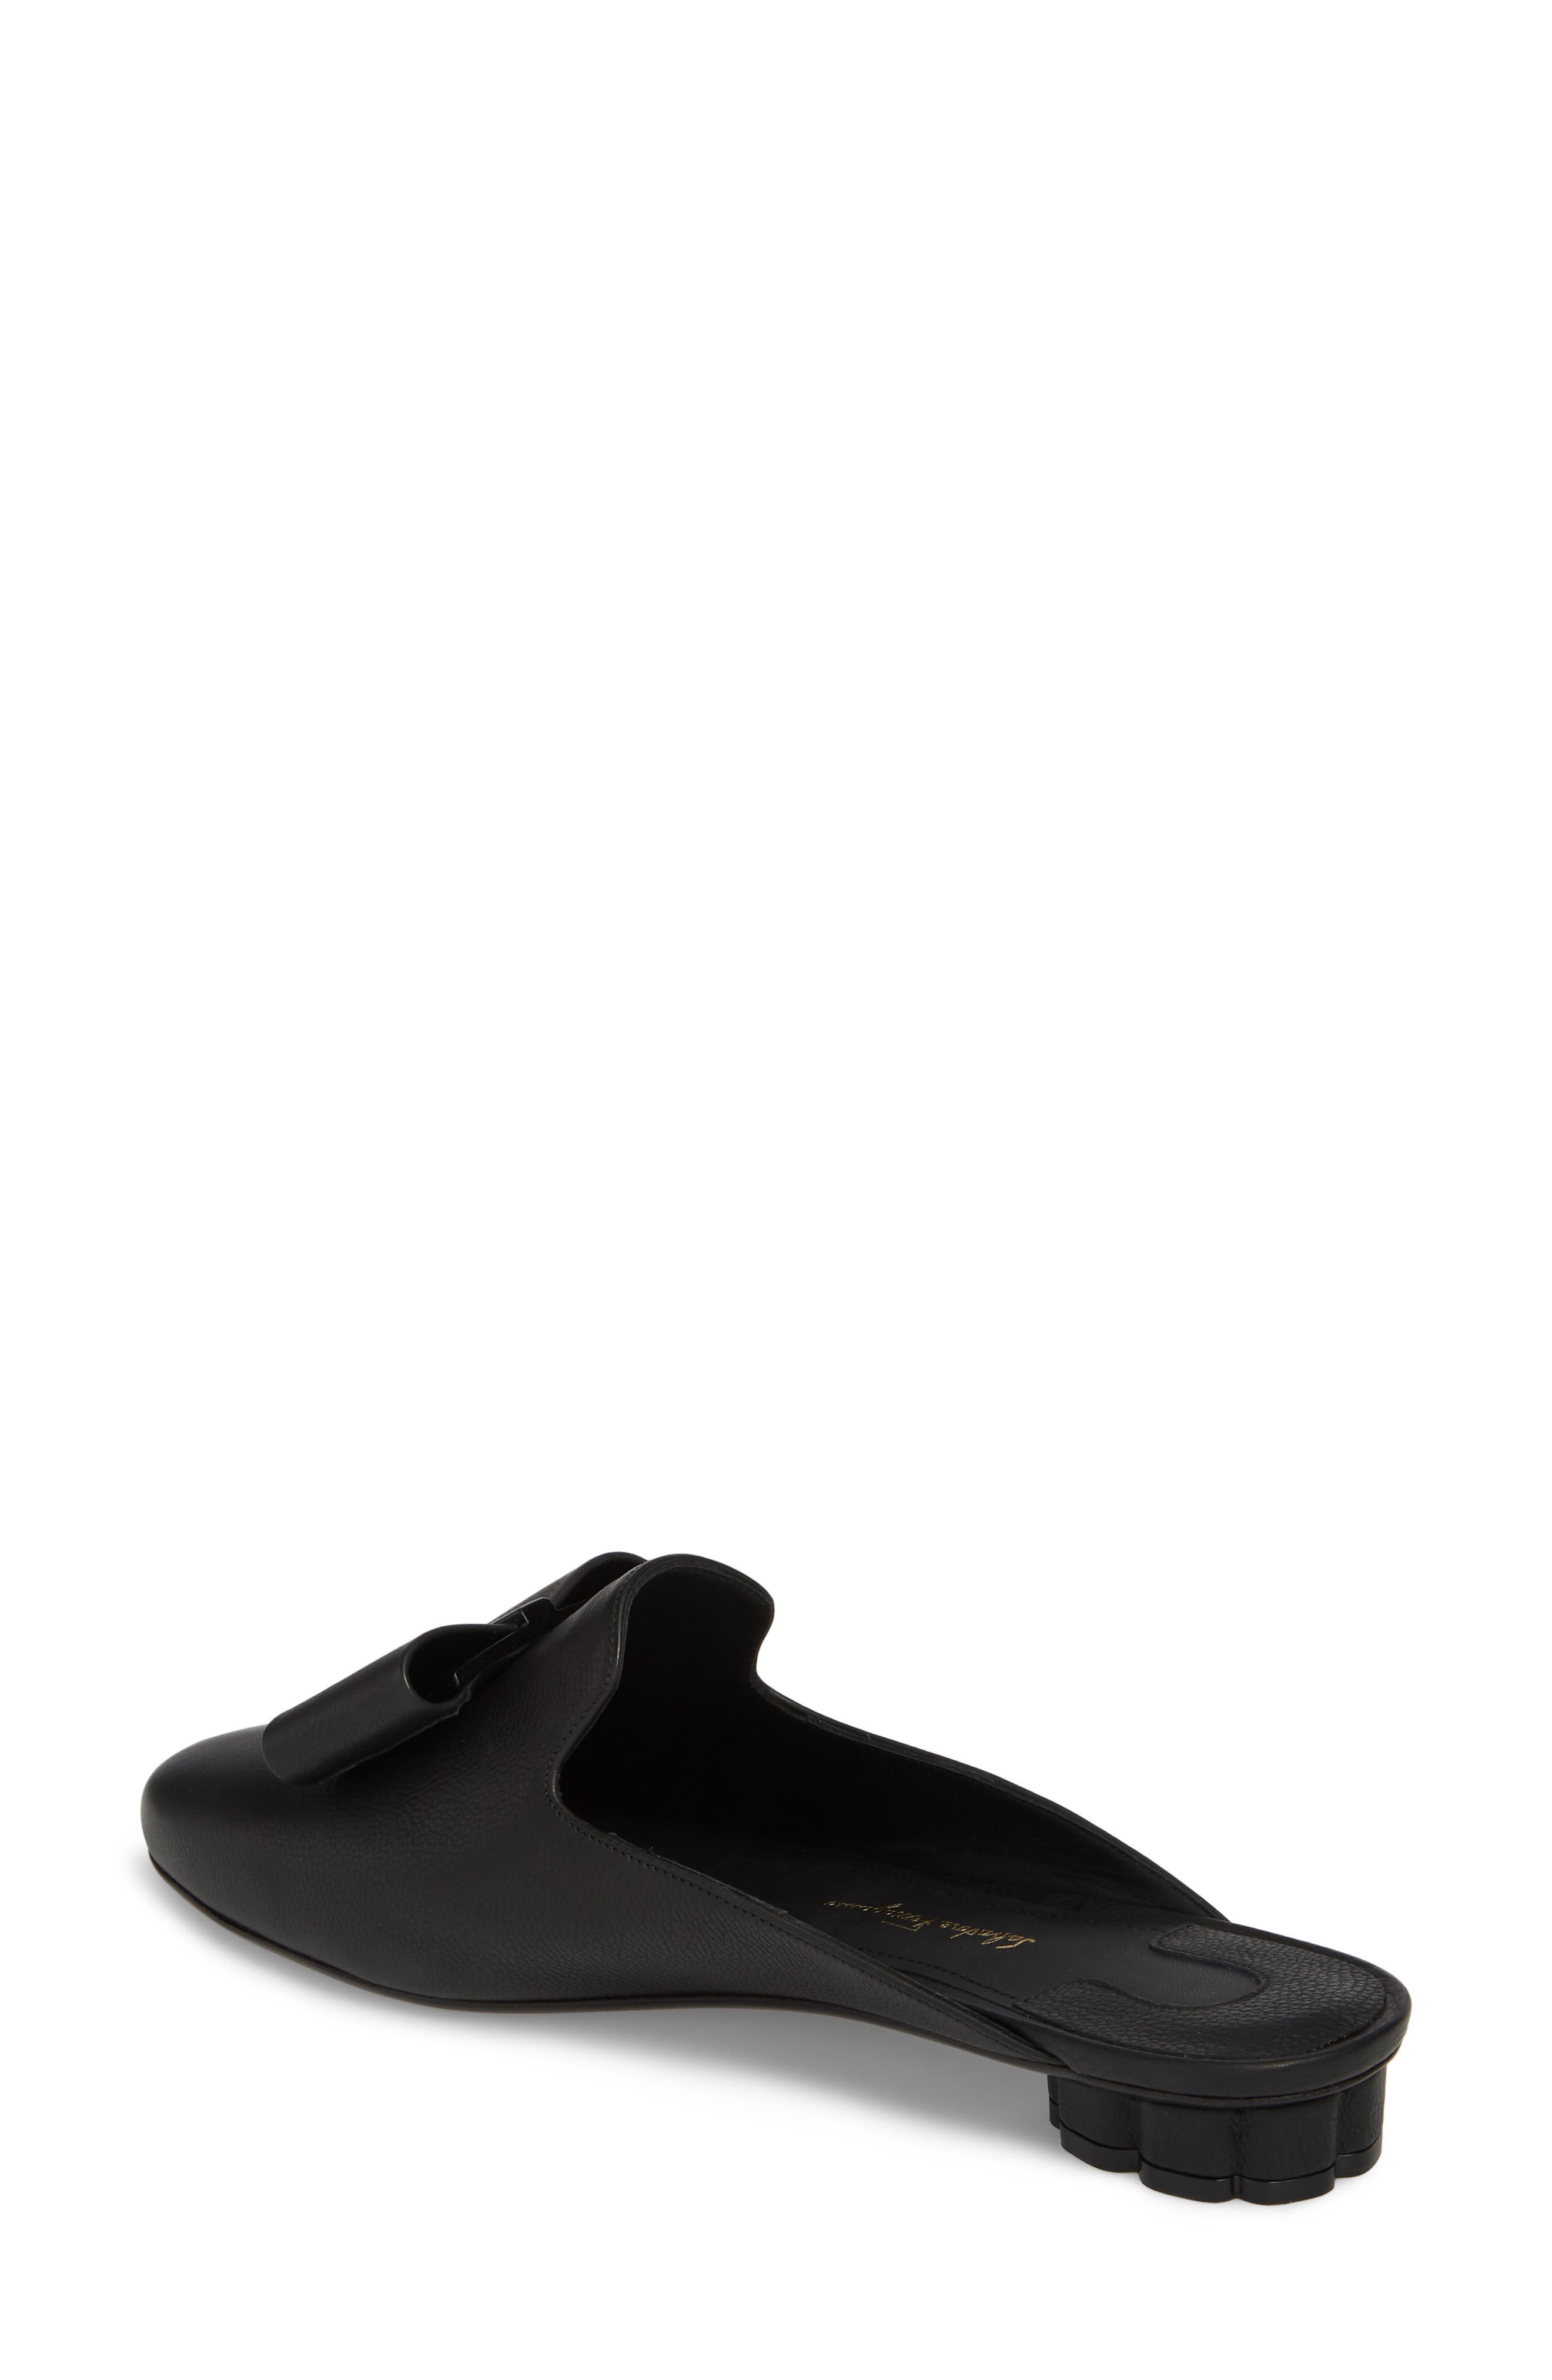 Sciacca Bow Loafer Mule,                             Alternate thumbnail 2, color,                             BLACK